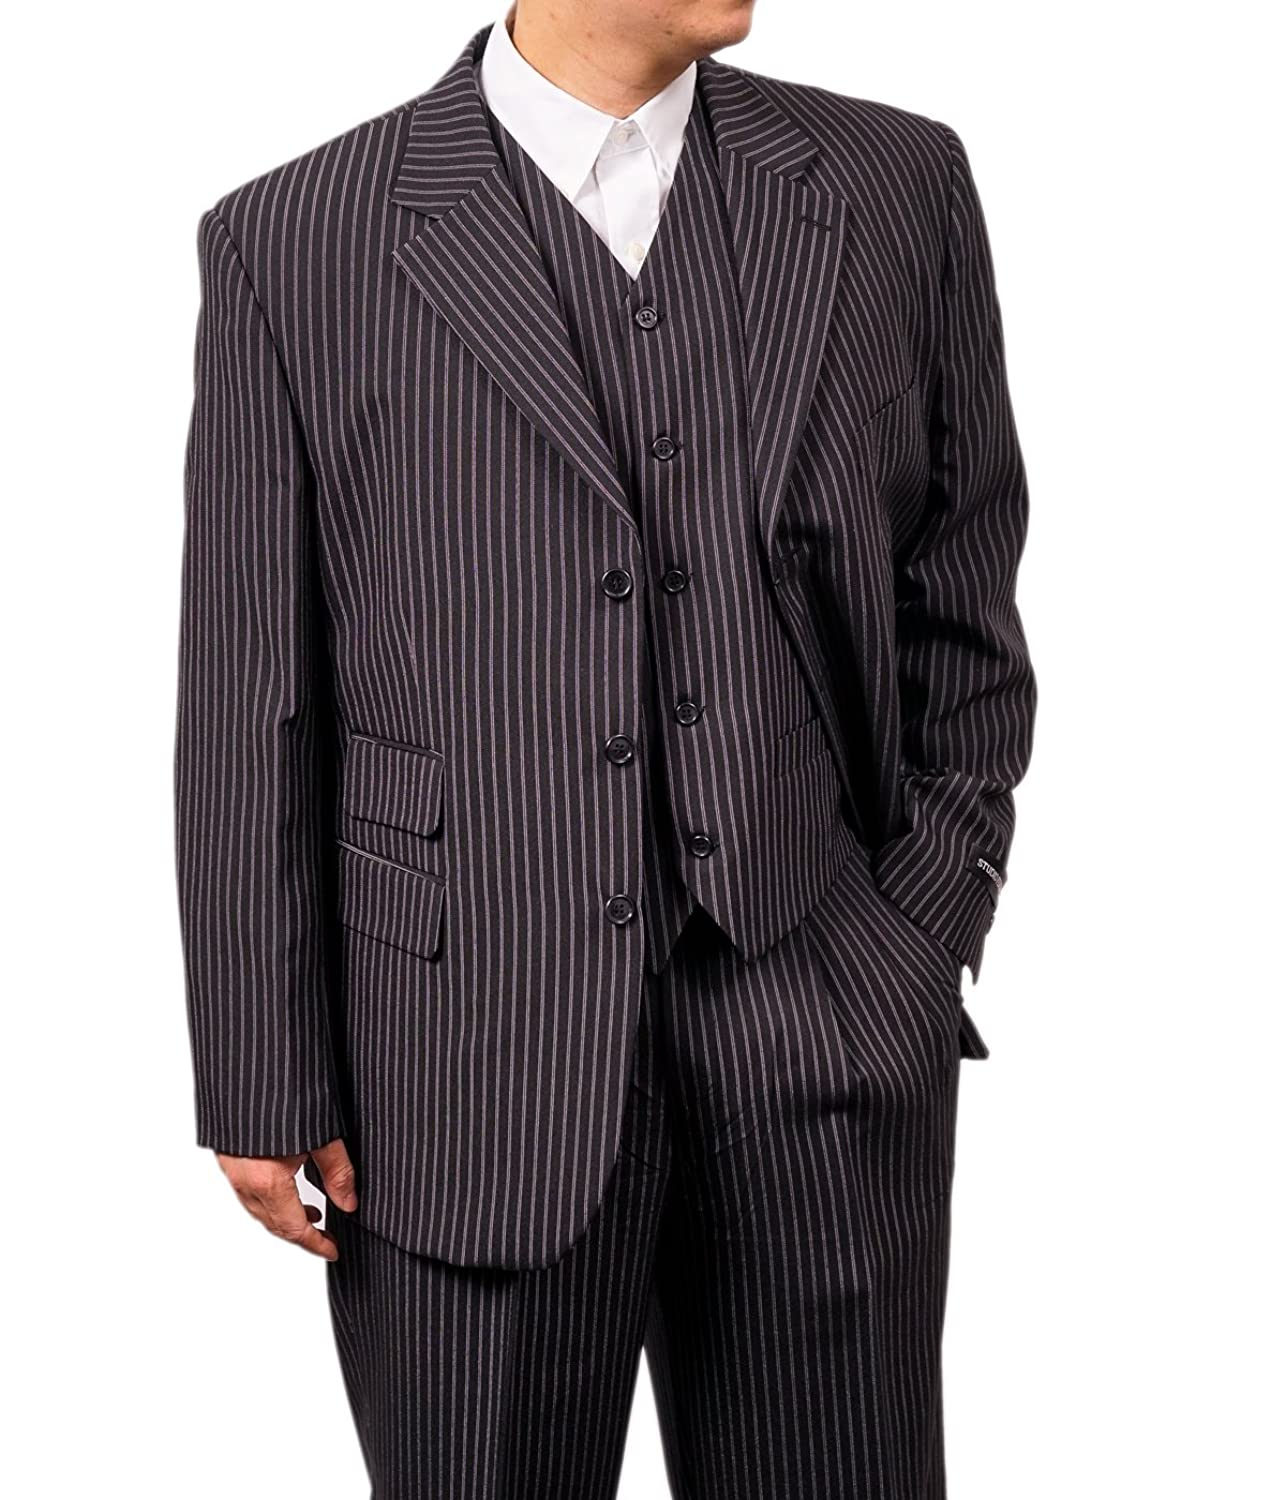 1940s Zoot Suit History & Buy Modern Zoot Suits New Mens 3 Piece Black Gangster Pinstripe Dress Suit with Matching Vest $119.99 AT vintagedancer.com